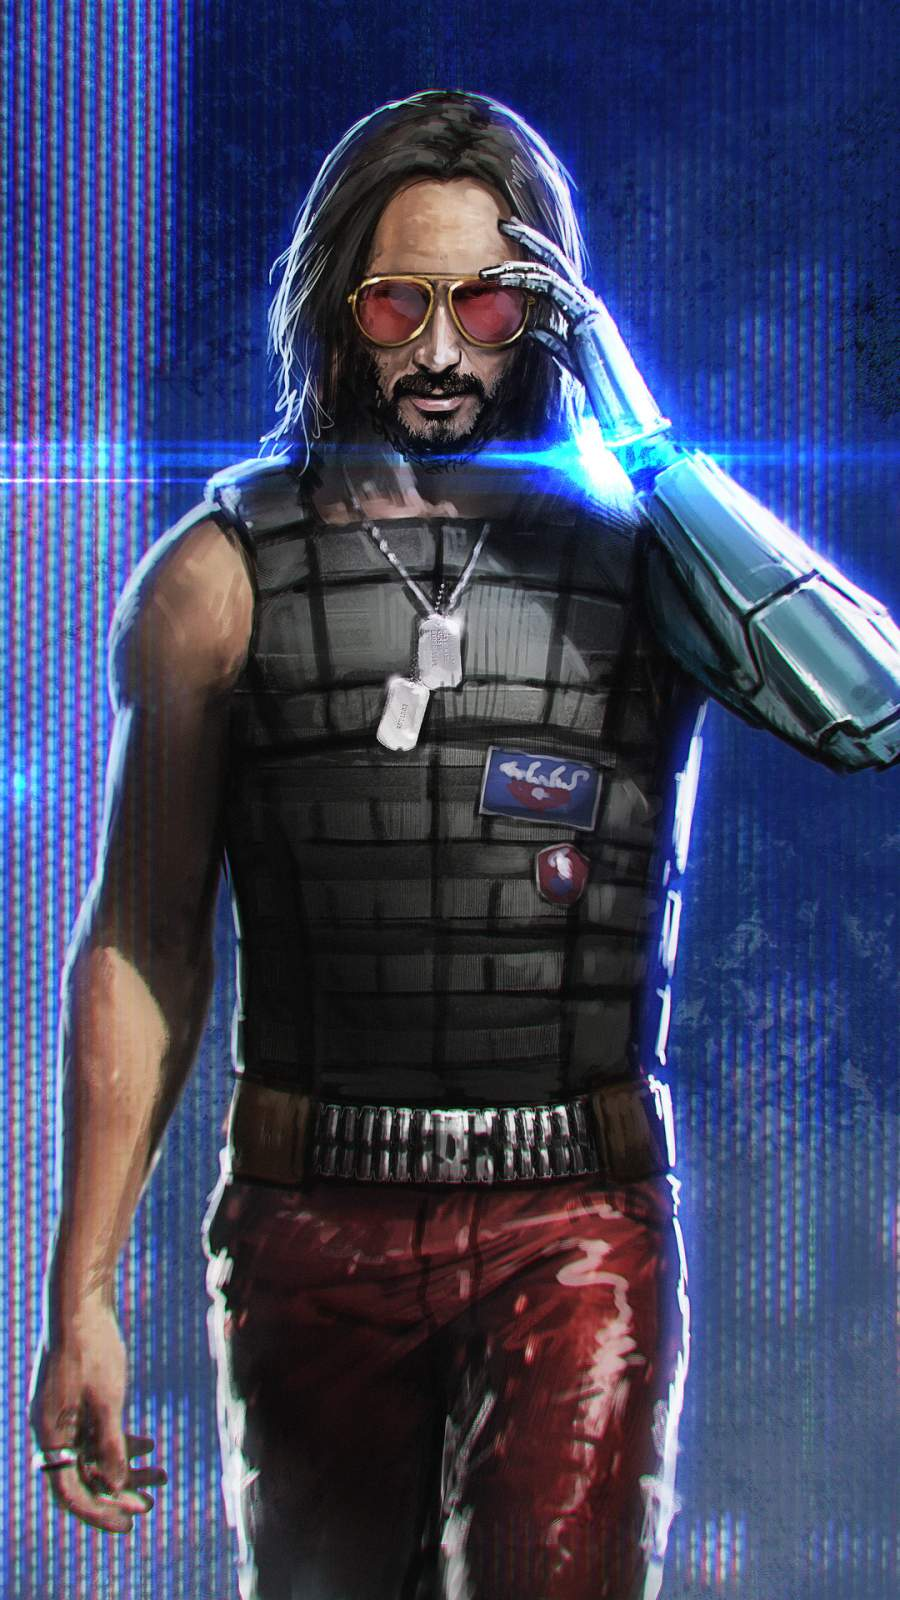 keanu reeves cyberpunk iphone wallpaper